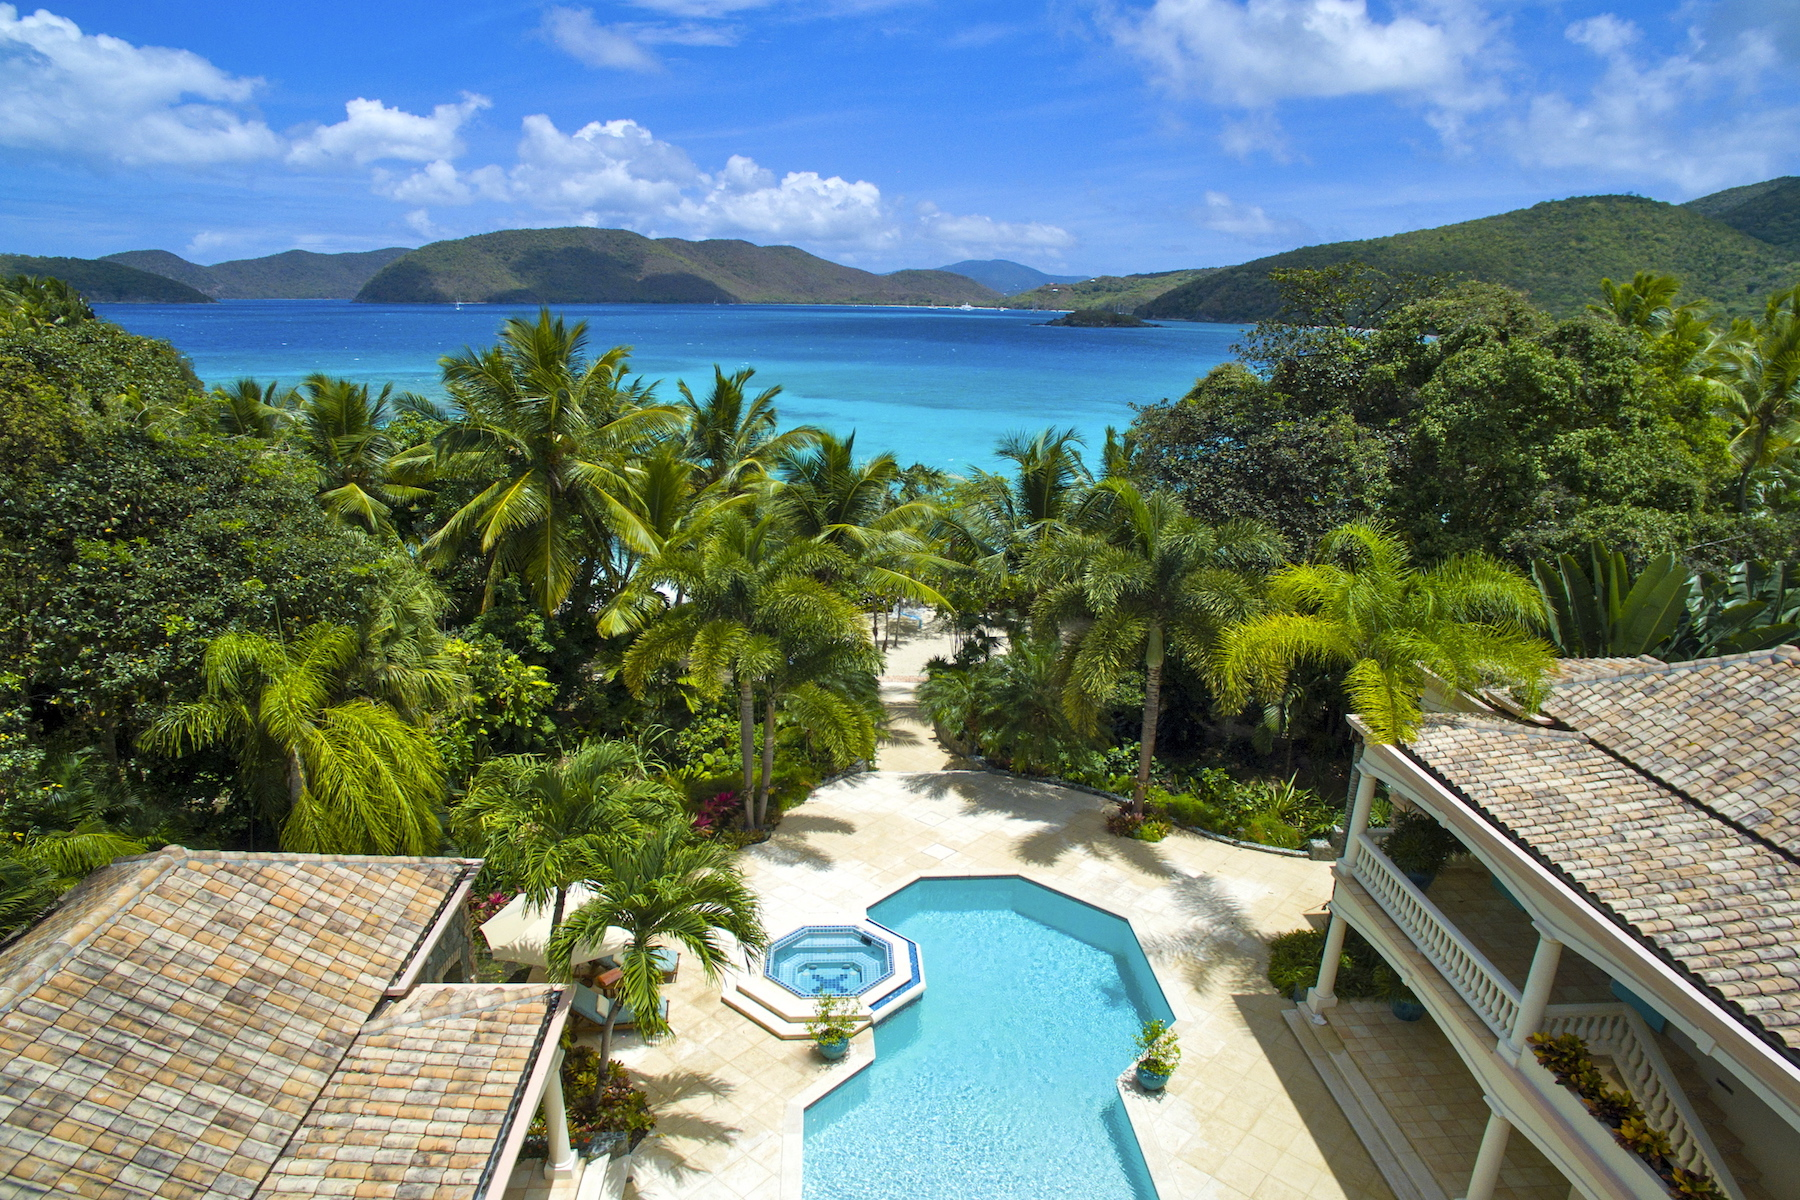 Single Family Home for Sale at 1 Peter Bay St John, 00830 United States Virgin Islands